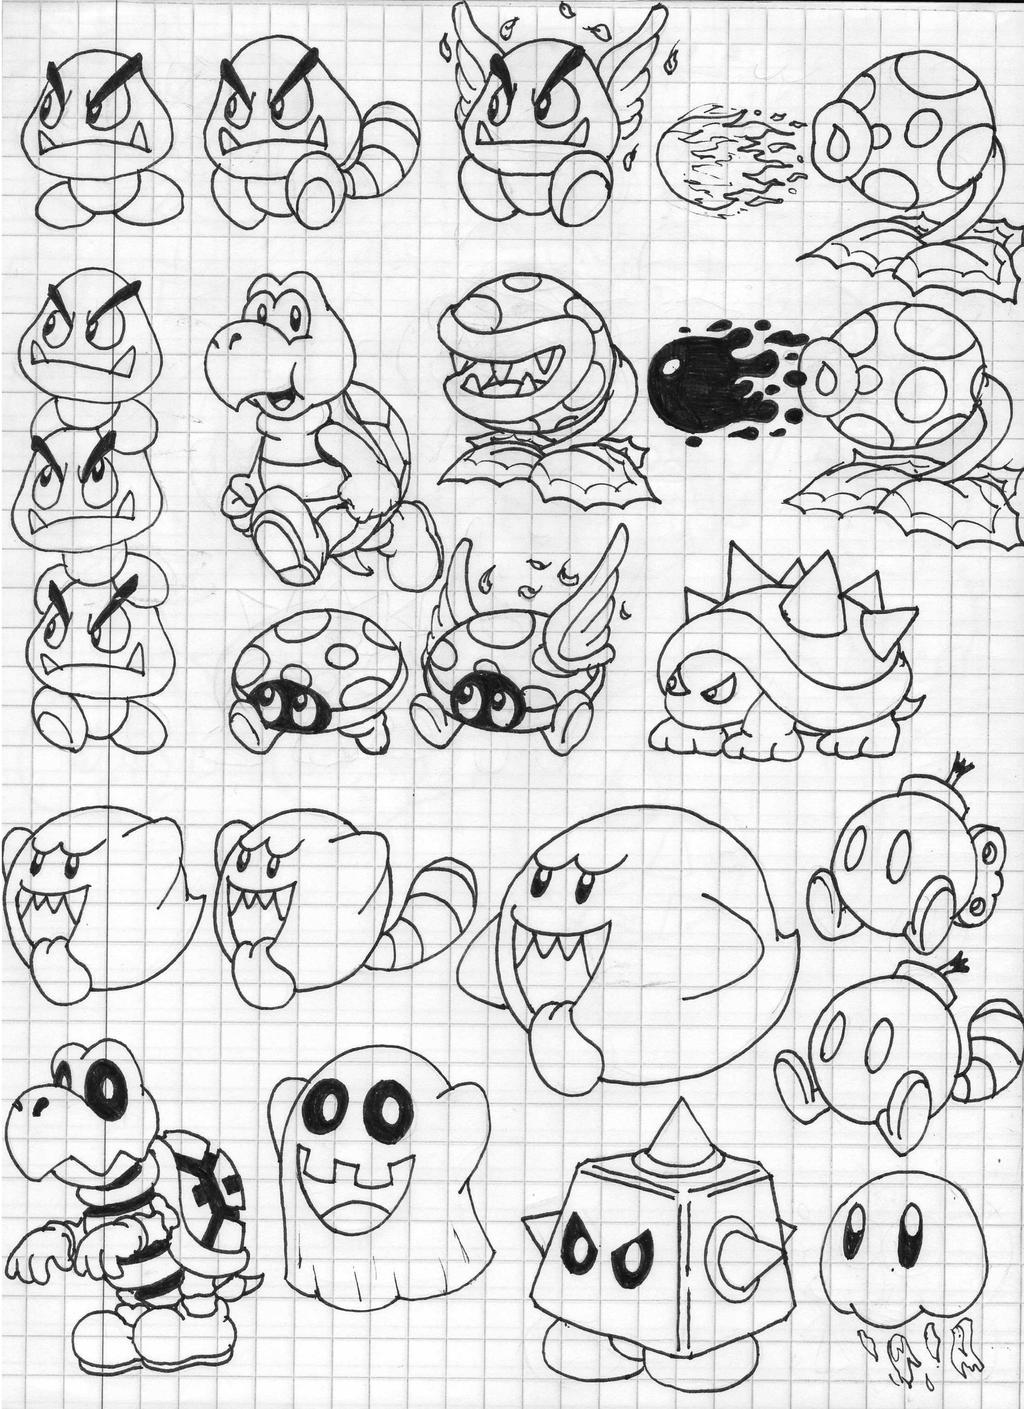 Mario 3d land coloring pages